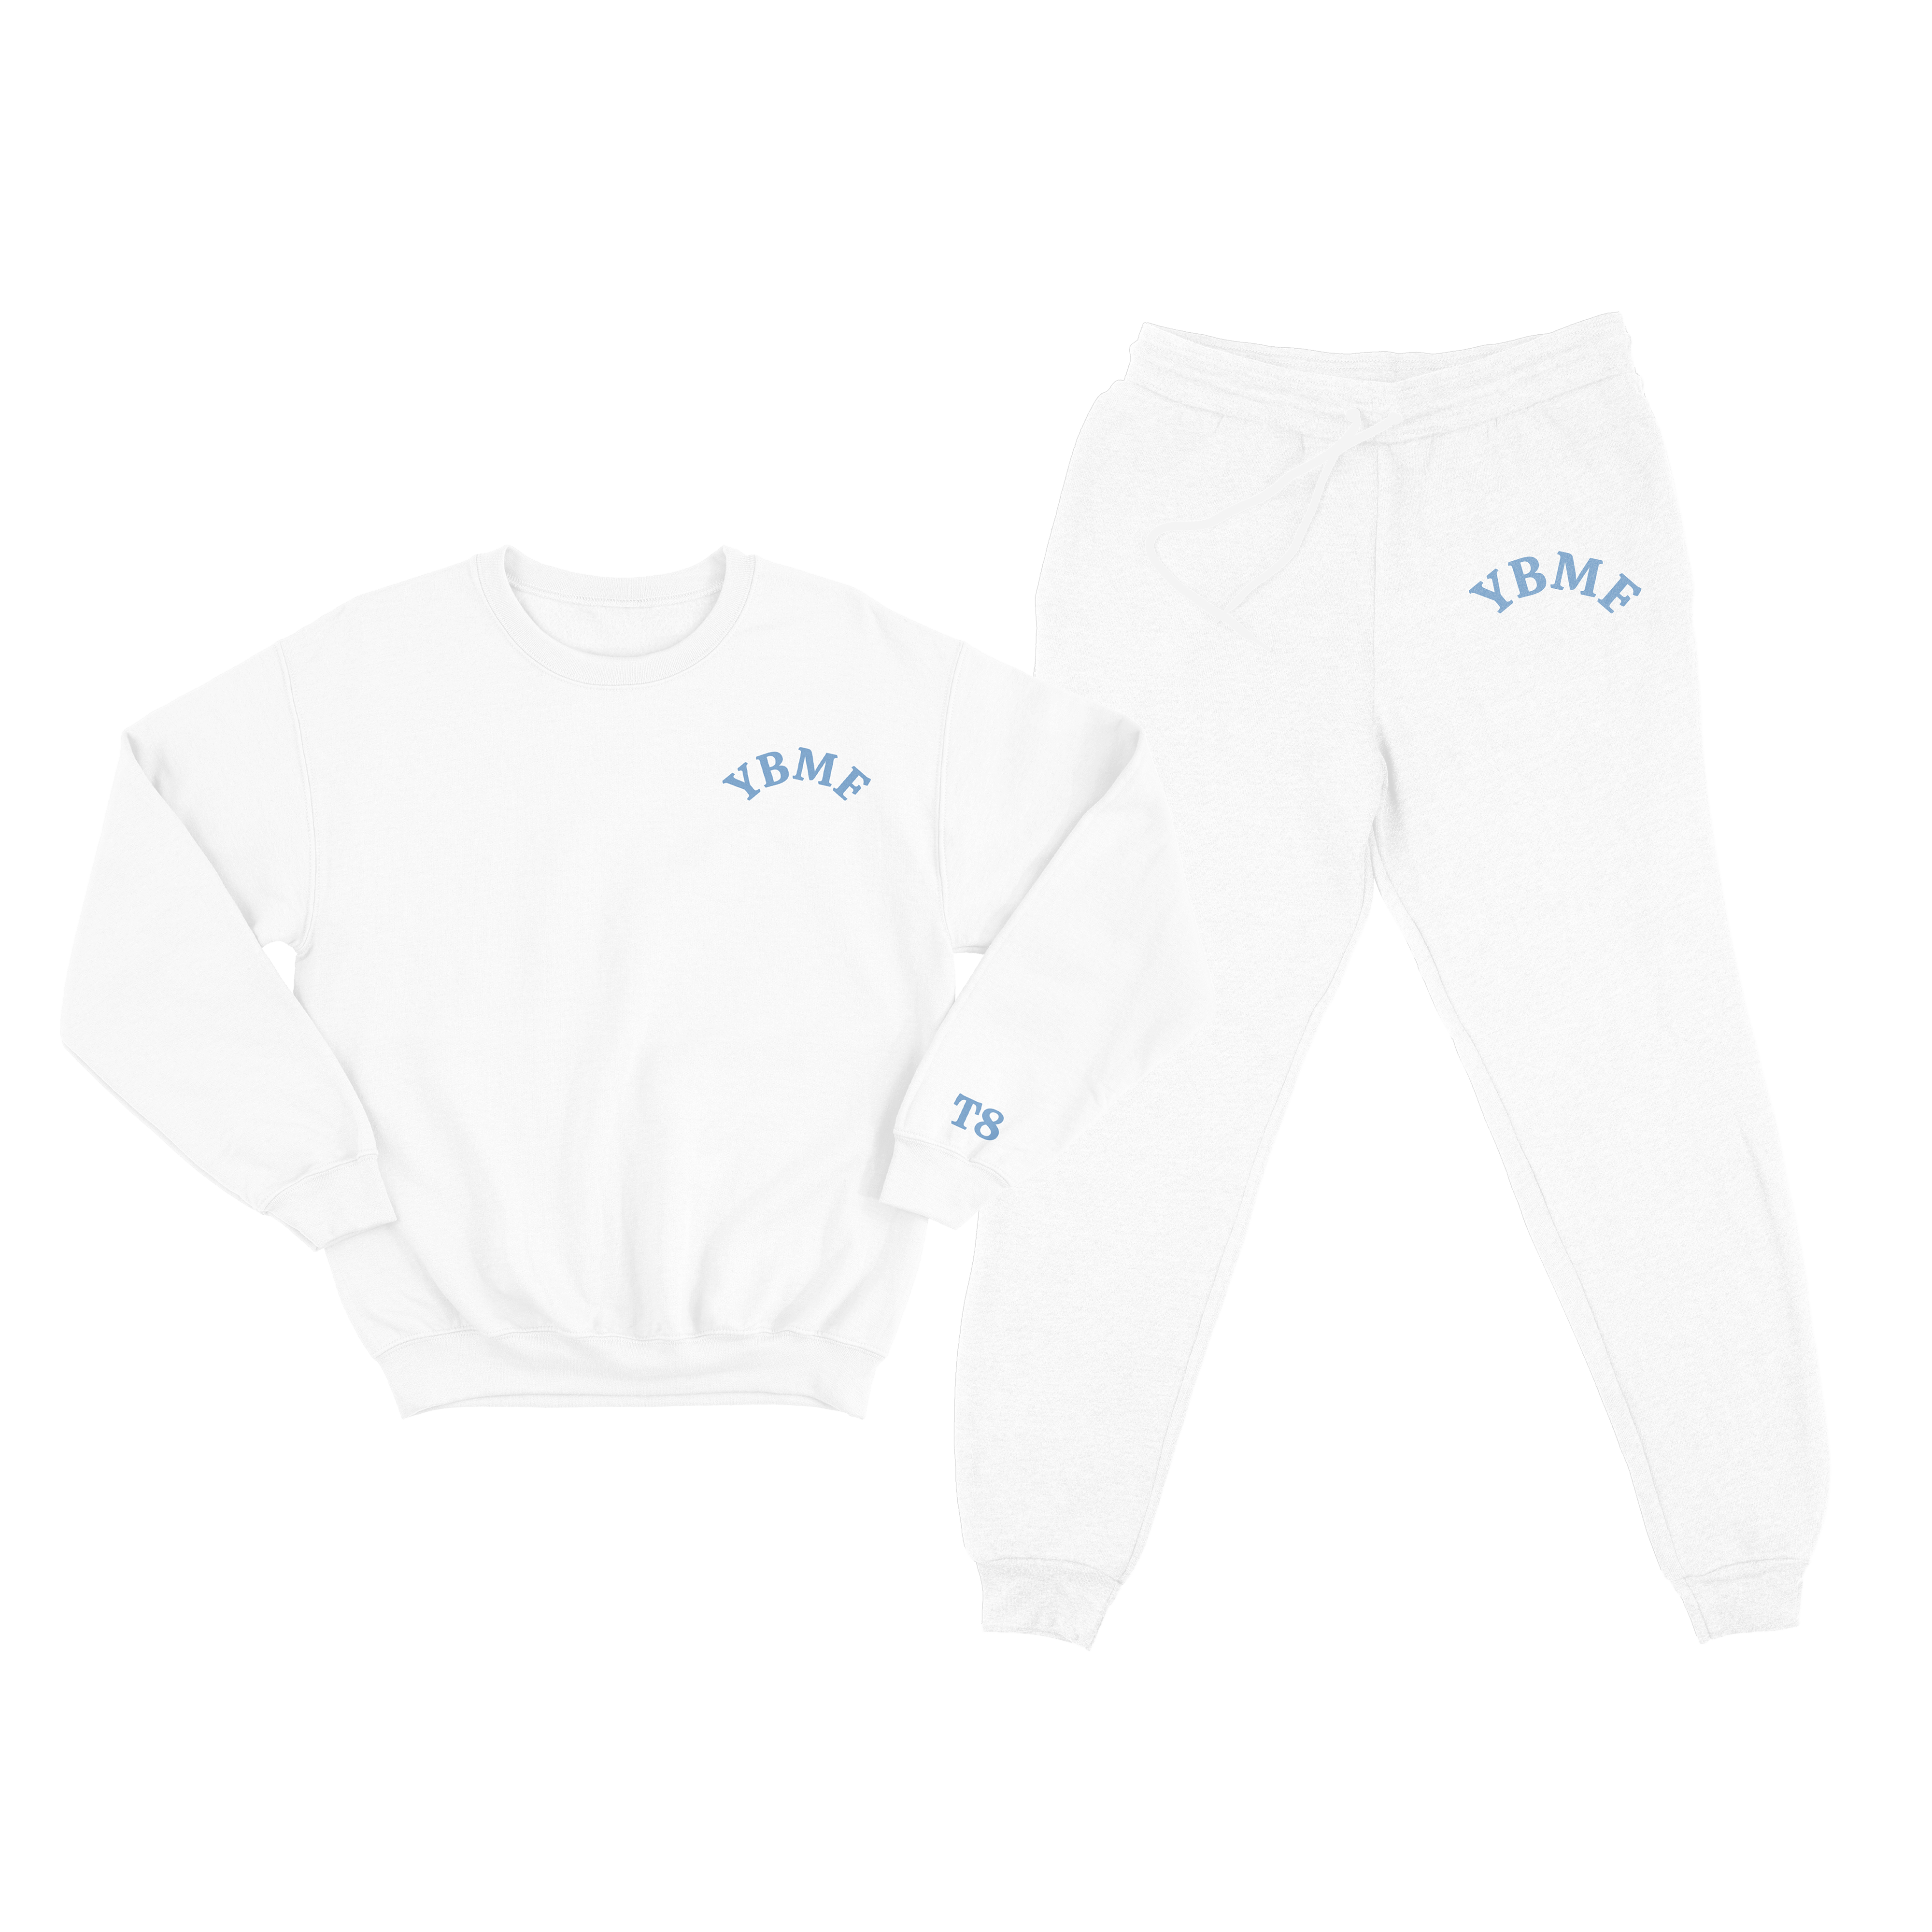 YBMF Bundle (Crew + Sweatpants)